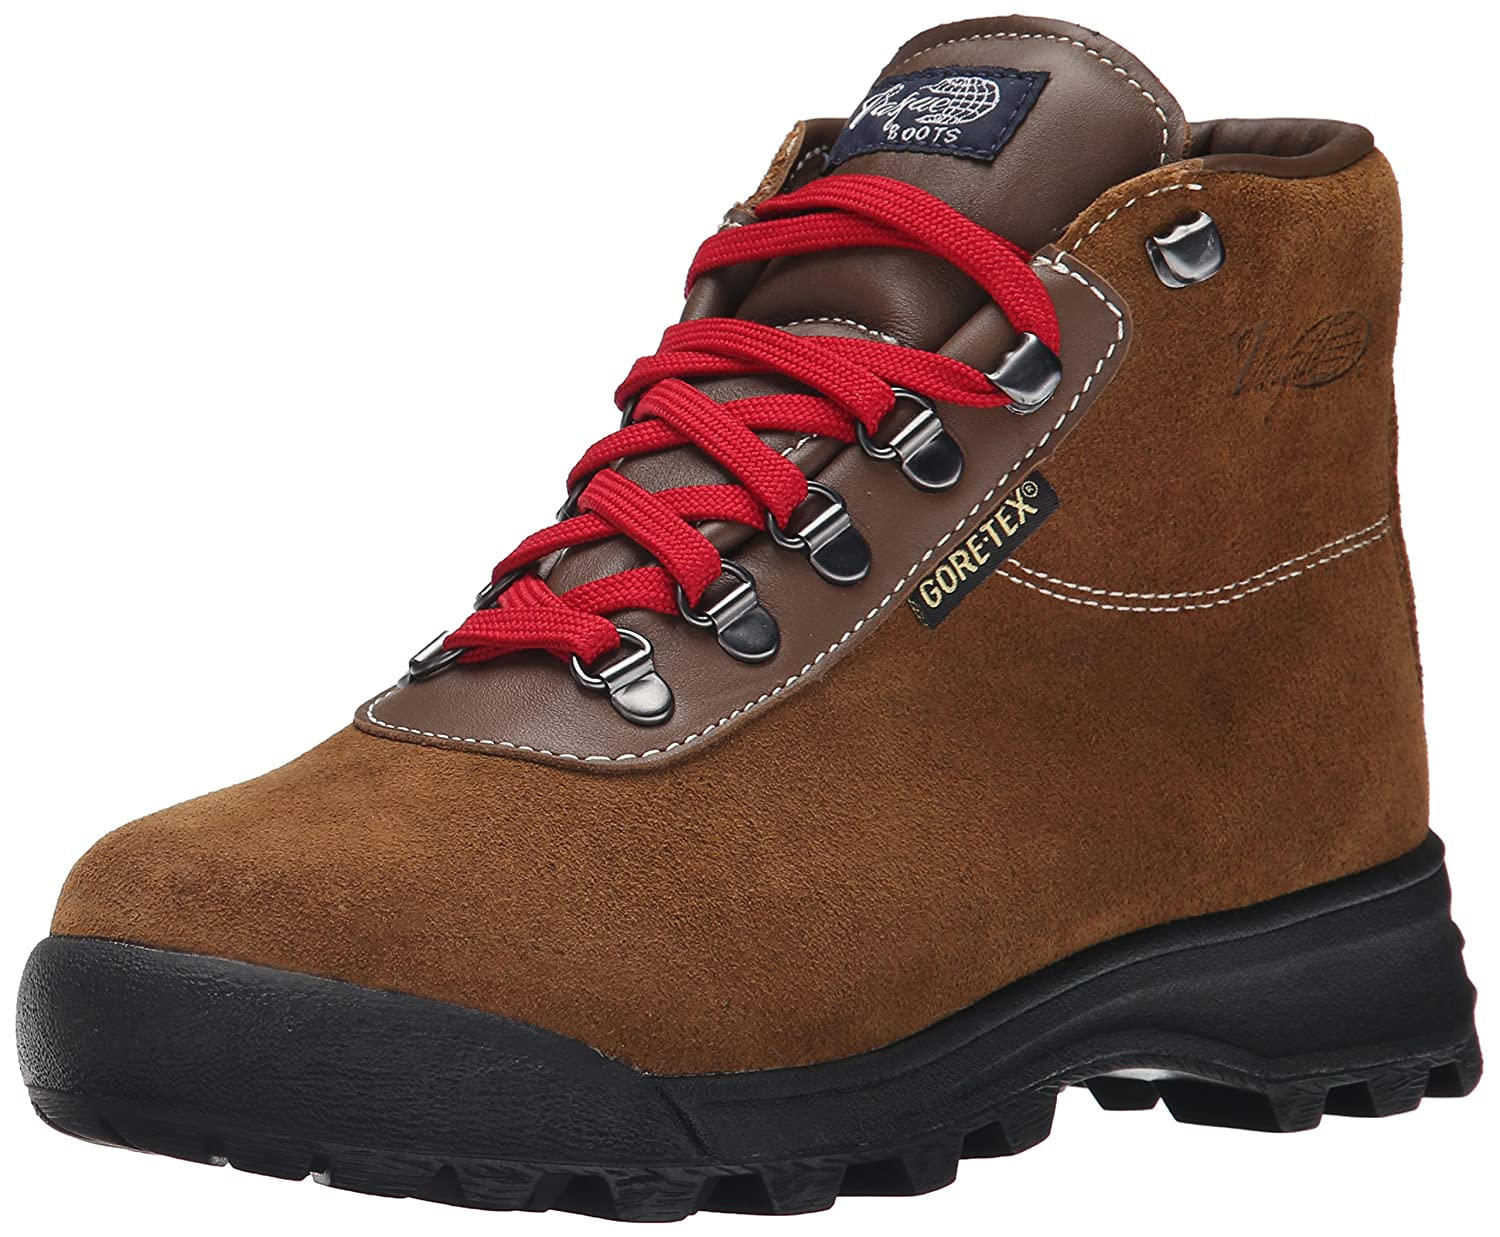 Vasque Women's Sundowner Gore-TEX Backpacking Boot B00TYJYYM8 6.5 B(M) US|Hawthorne